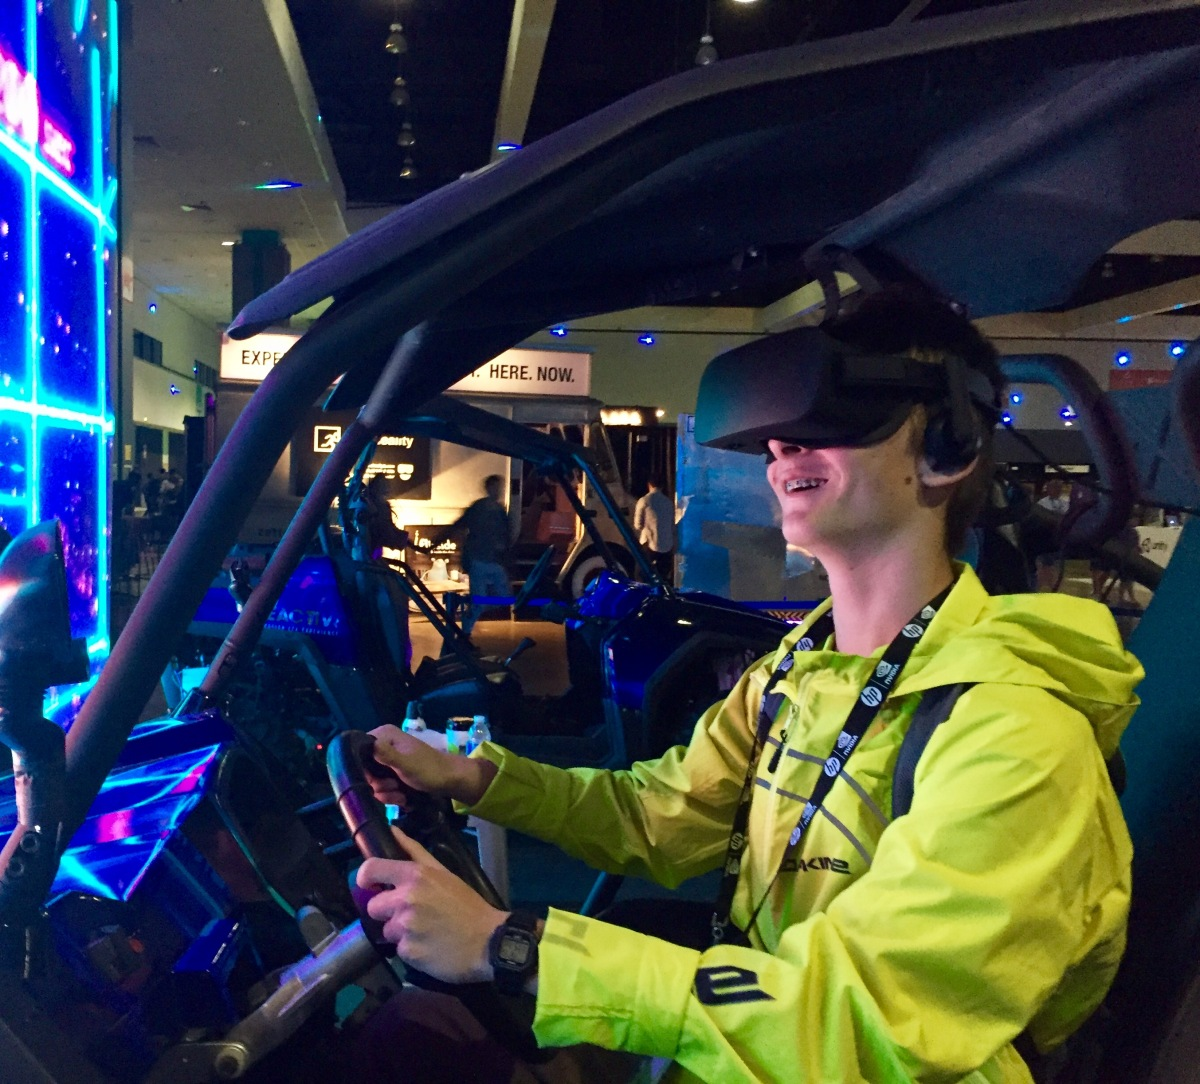 rylandanielsfullsizerender 5 VRLA 2017: A fast ride to another reality